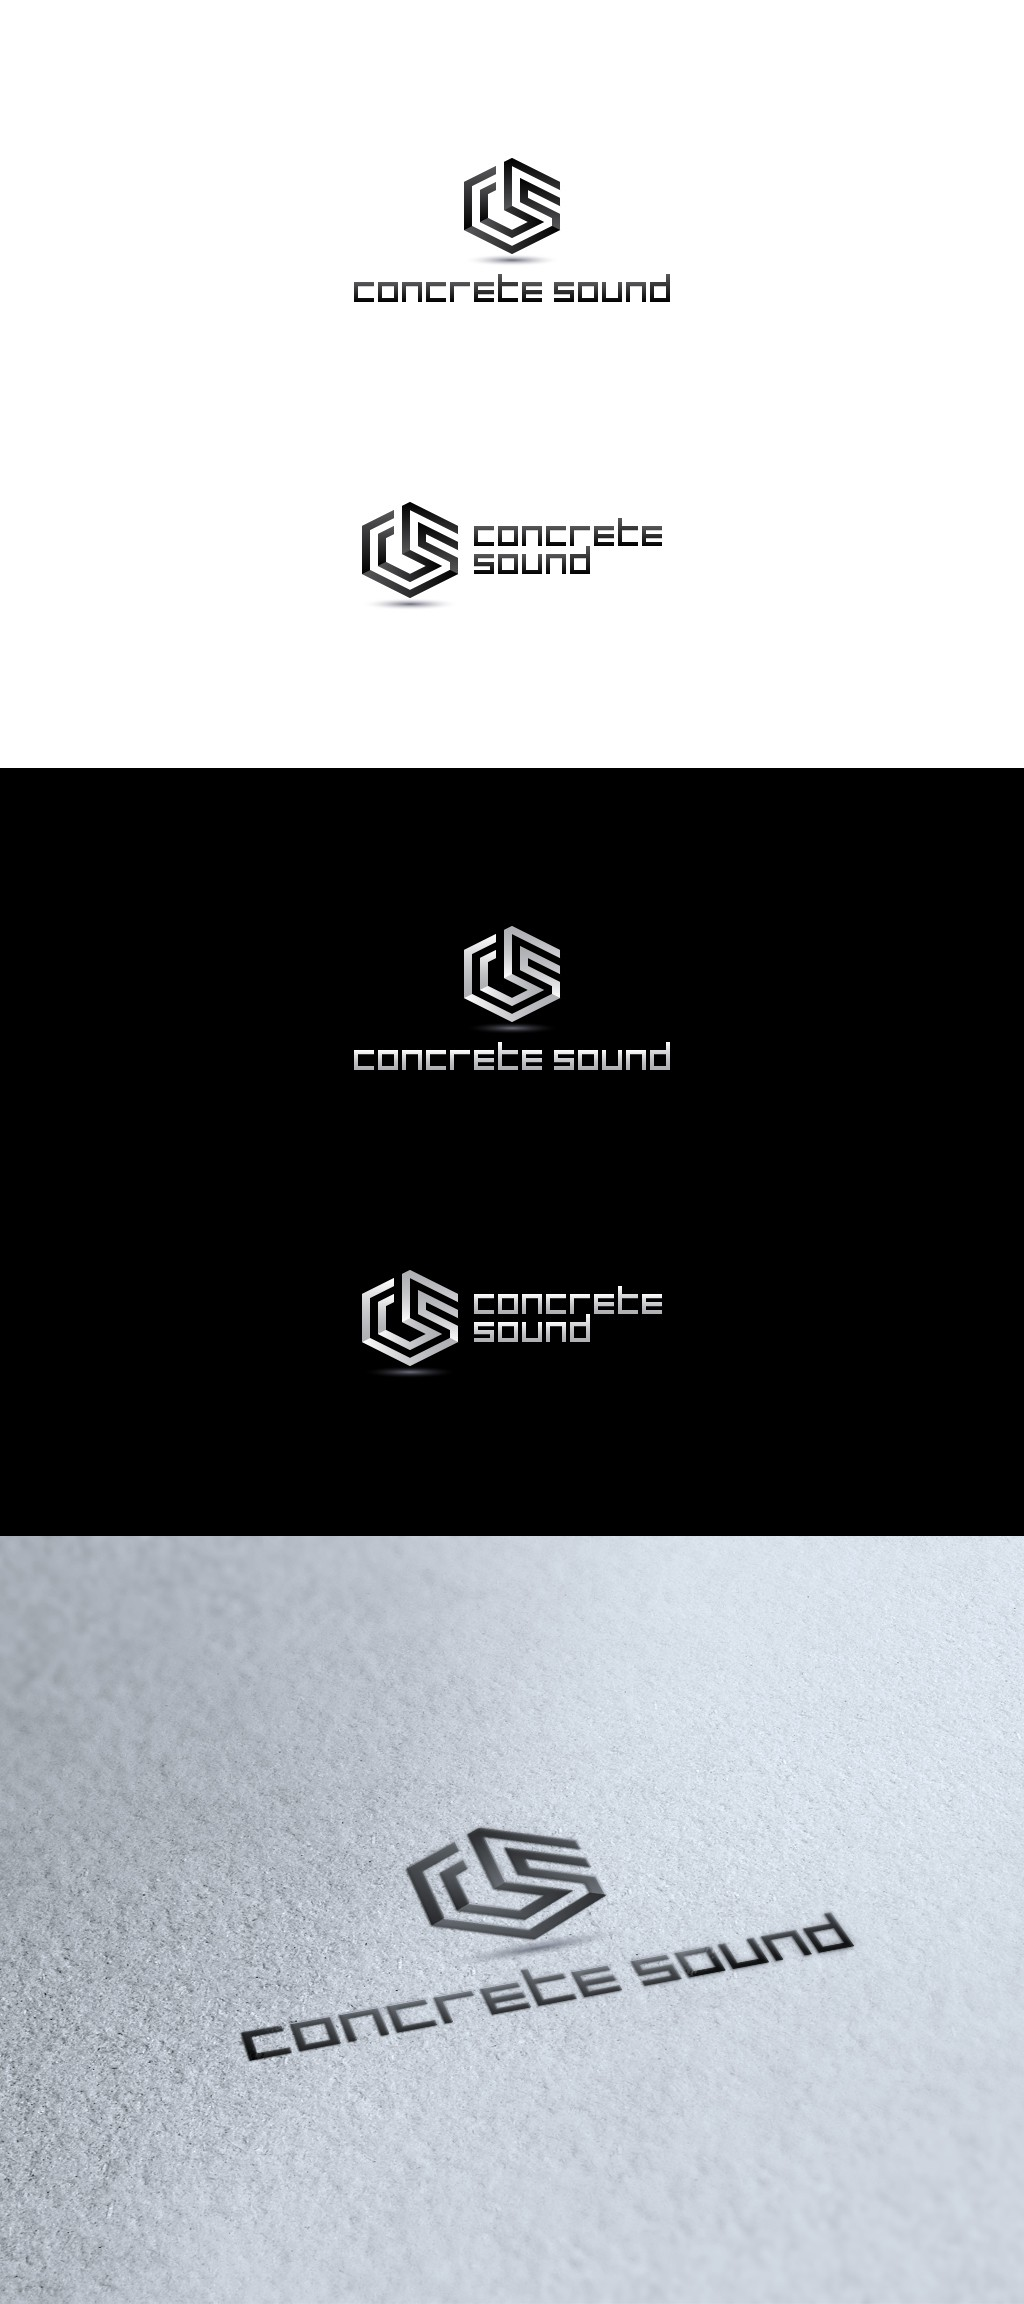 Create a logo for a modern startup that sells speakers out of concrete